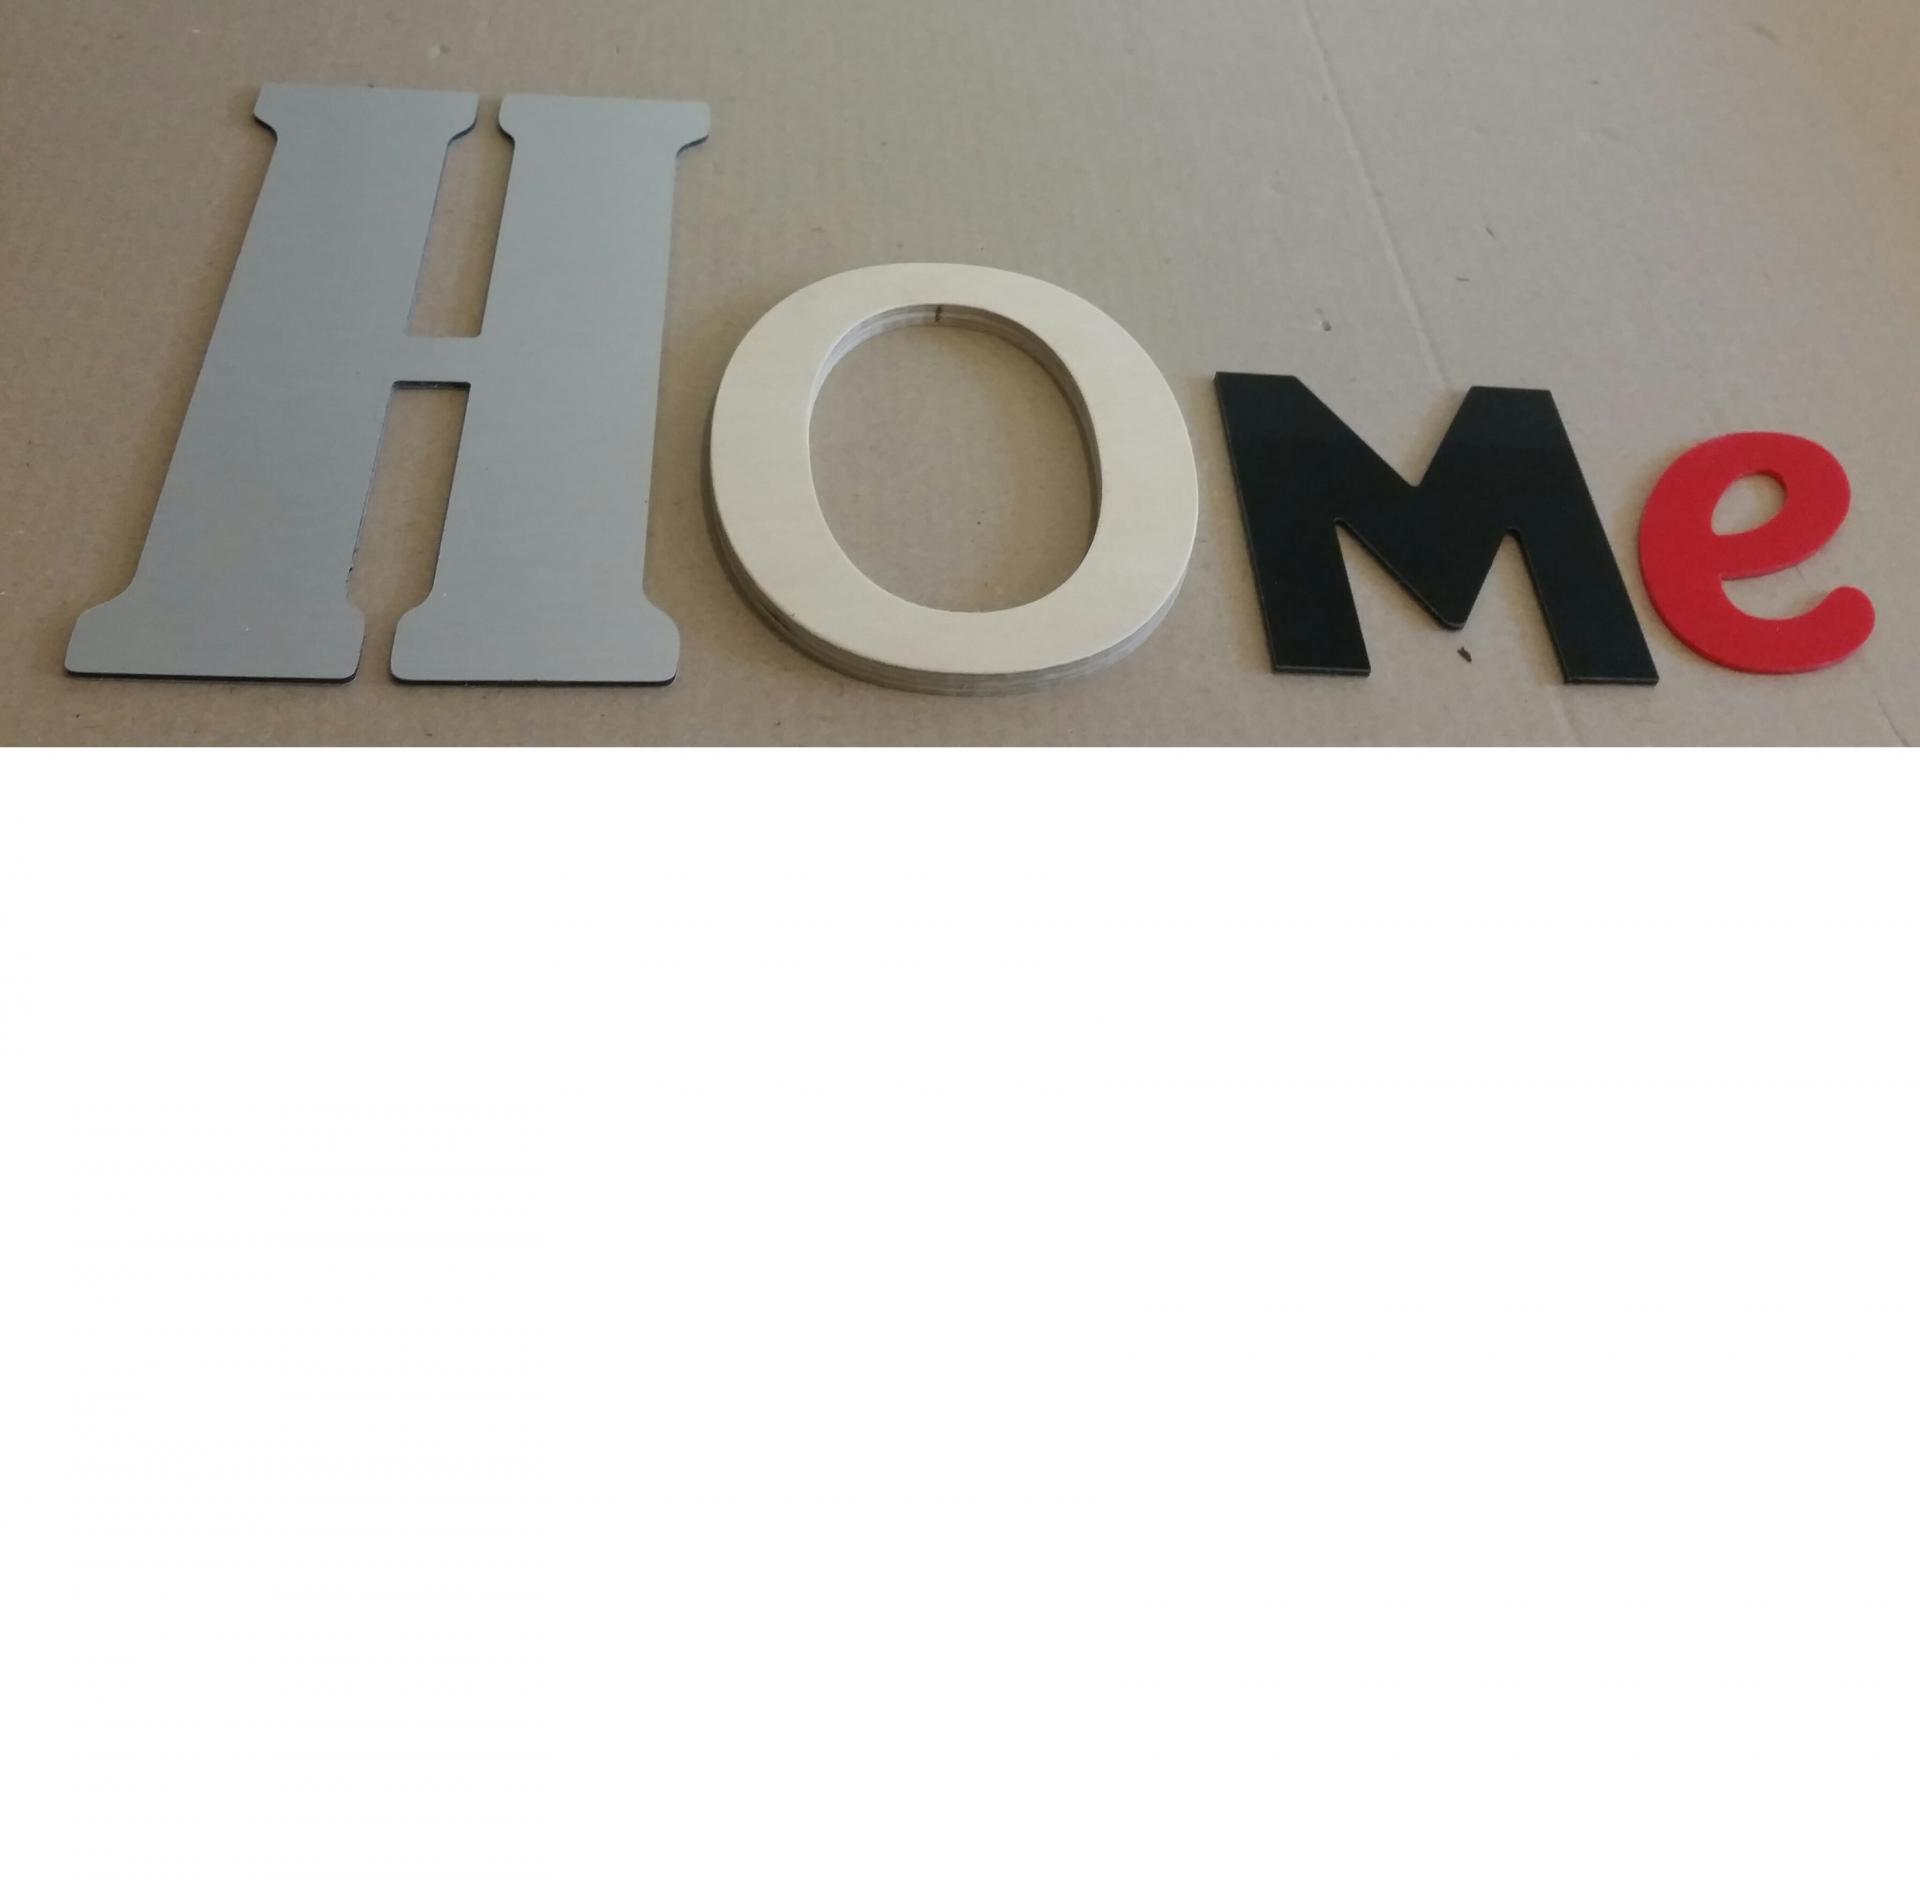 Lettre decorative home lot 0012